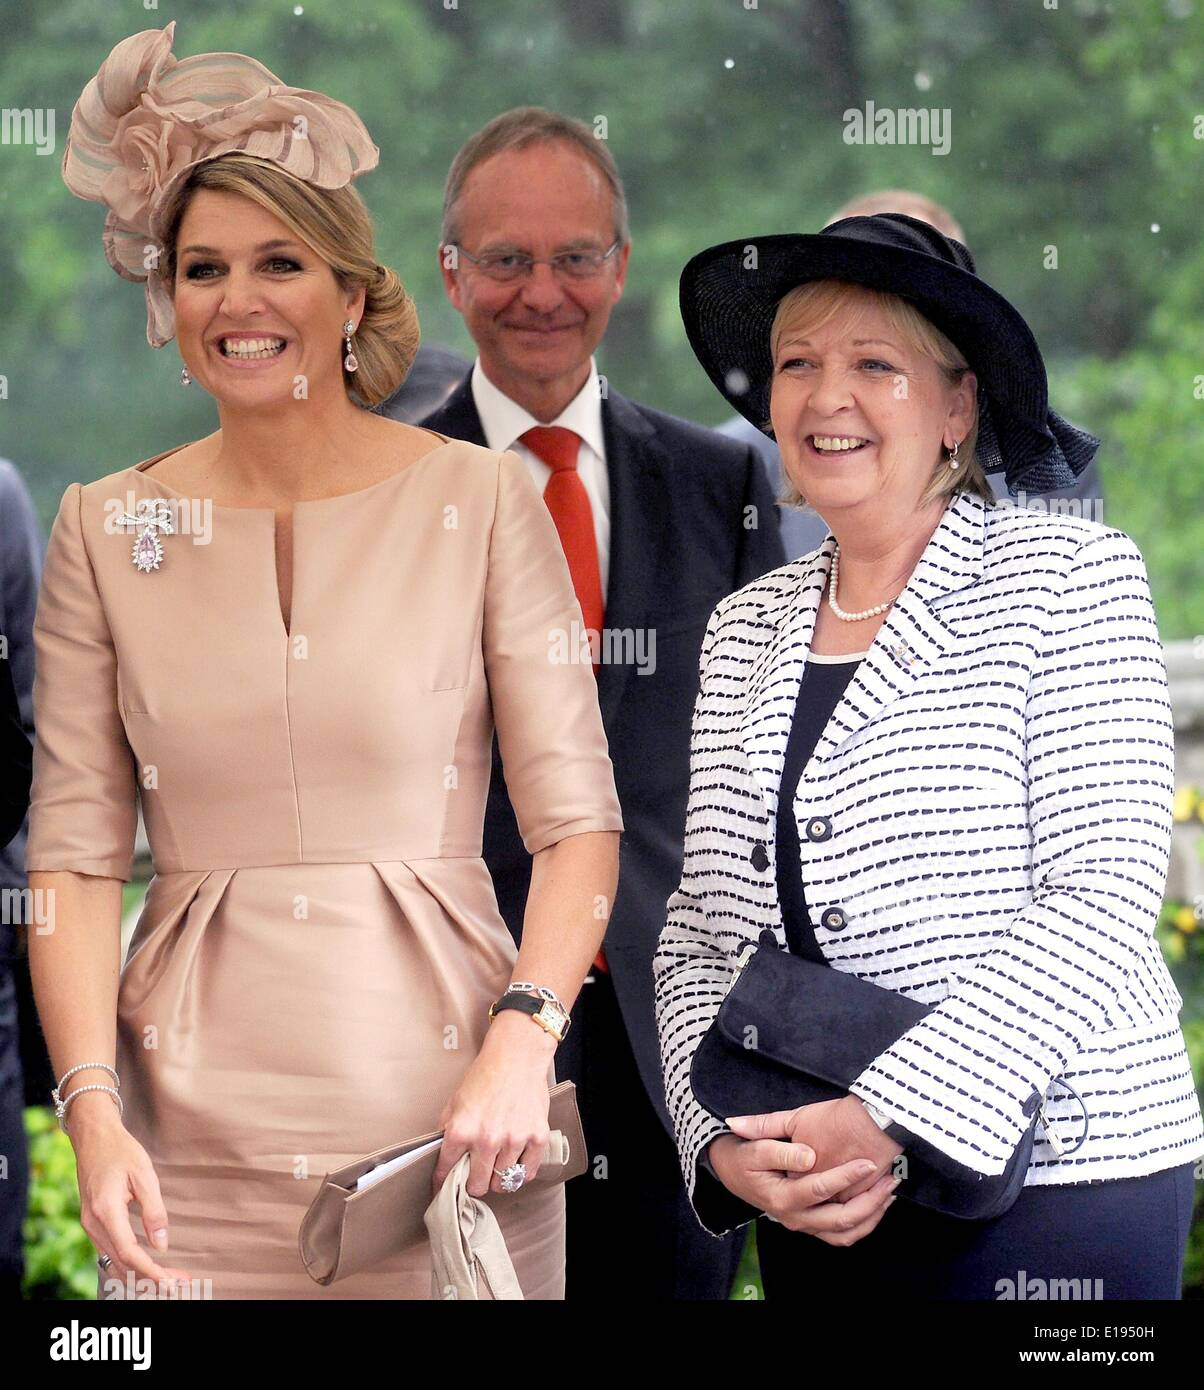 Bedburg-Hau, Germany. 27th May, 2014. North Rhine-Westphalia's Premier Hannelore Kraft (SPD, R) and Queen Maxima of the Netherlands (L) pose in front of Museum Schloss Moyland in Bedburg-Hau, Germany, 27 May 2014. The Dutch royal couple is on a two-day visit to Germany. Photo: HENNING KAISER/dpa/Alamy Live News - Stock Image